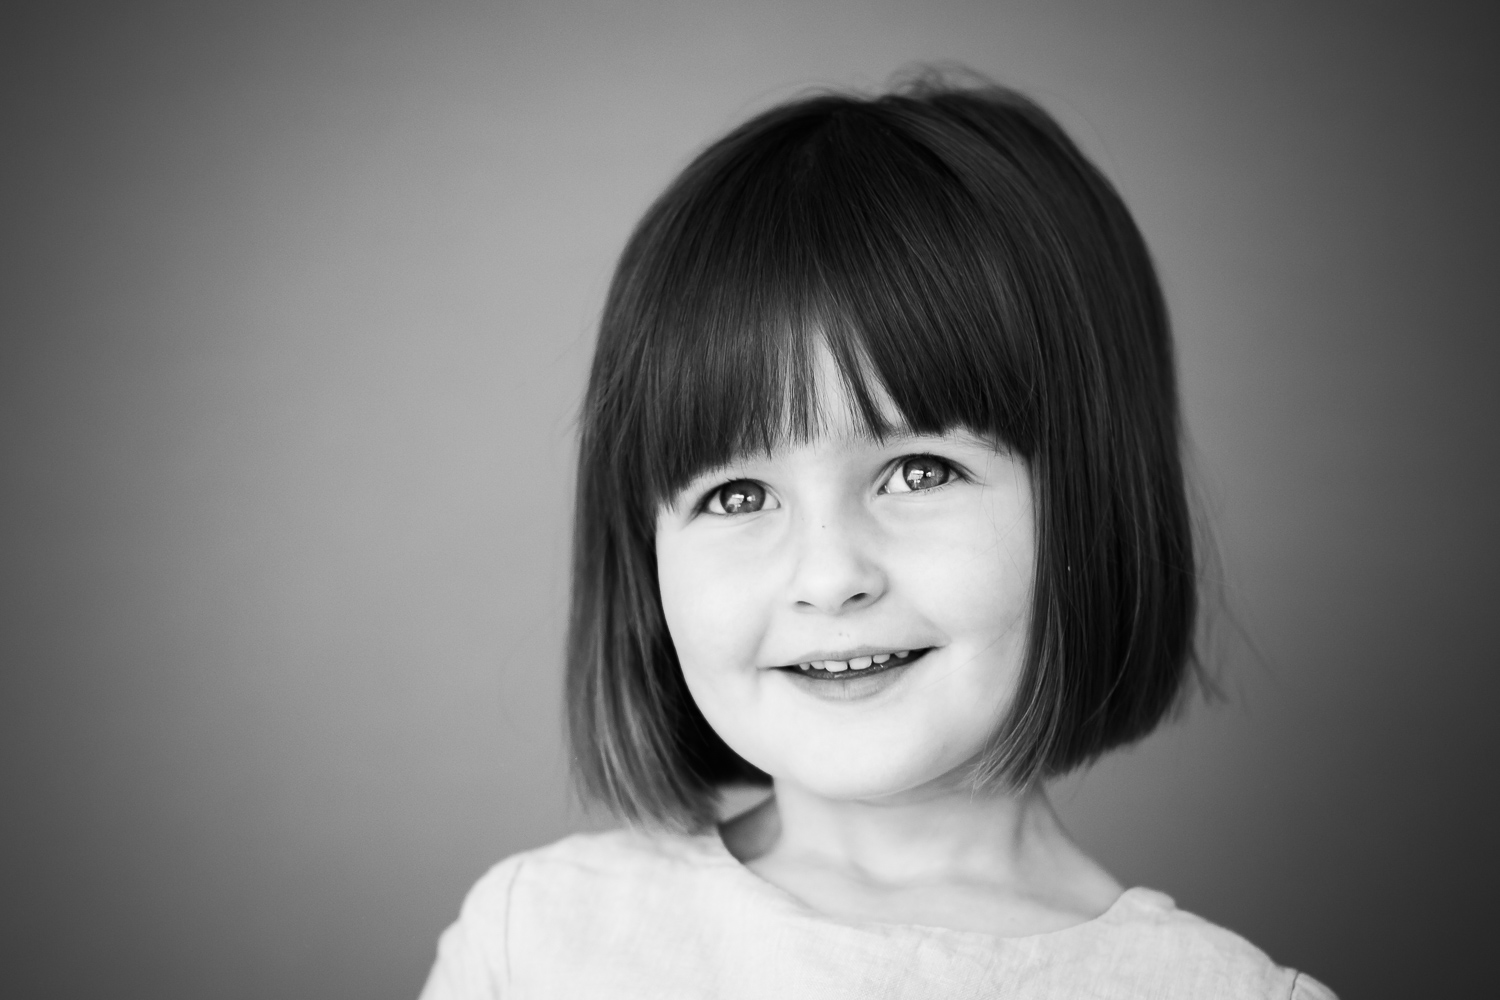 Nursery_Children_Portraits_London_Carla_Monge_Photography_1500px-1.jpg